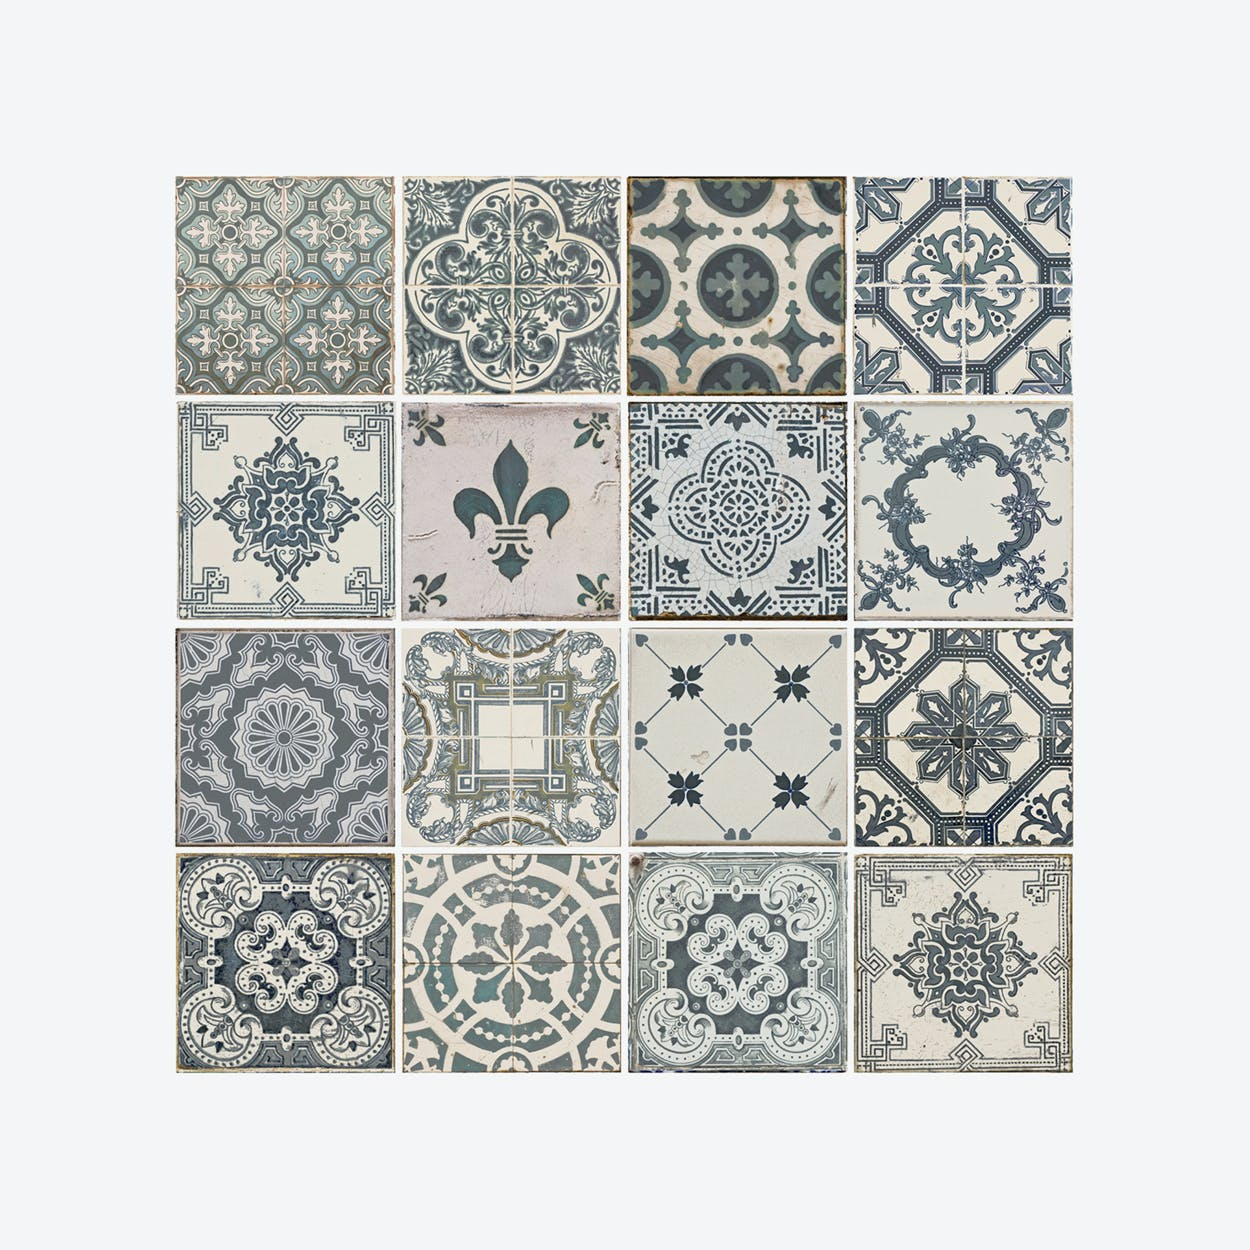 Vintage Blue Tile Pattern Self-adhesive Decal